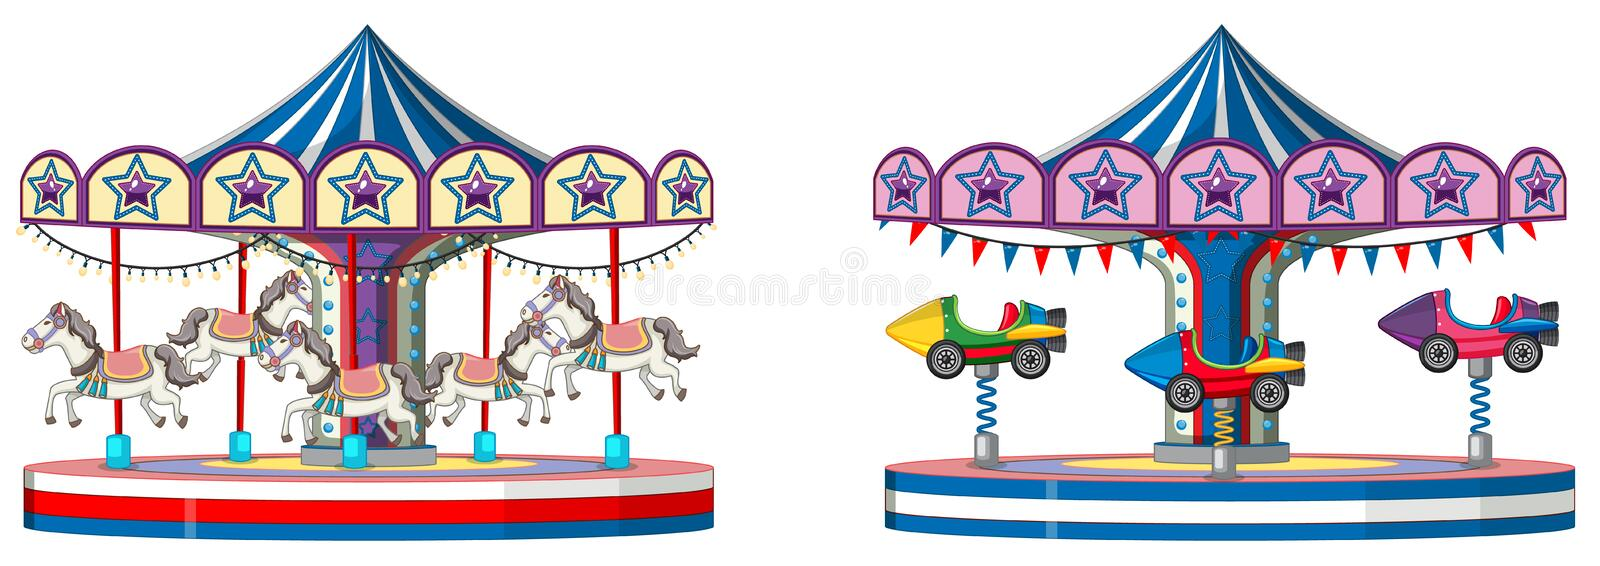 Two designs of merry go round on white background stock illustration